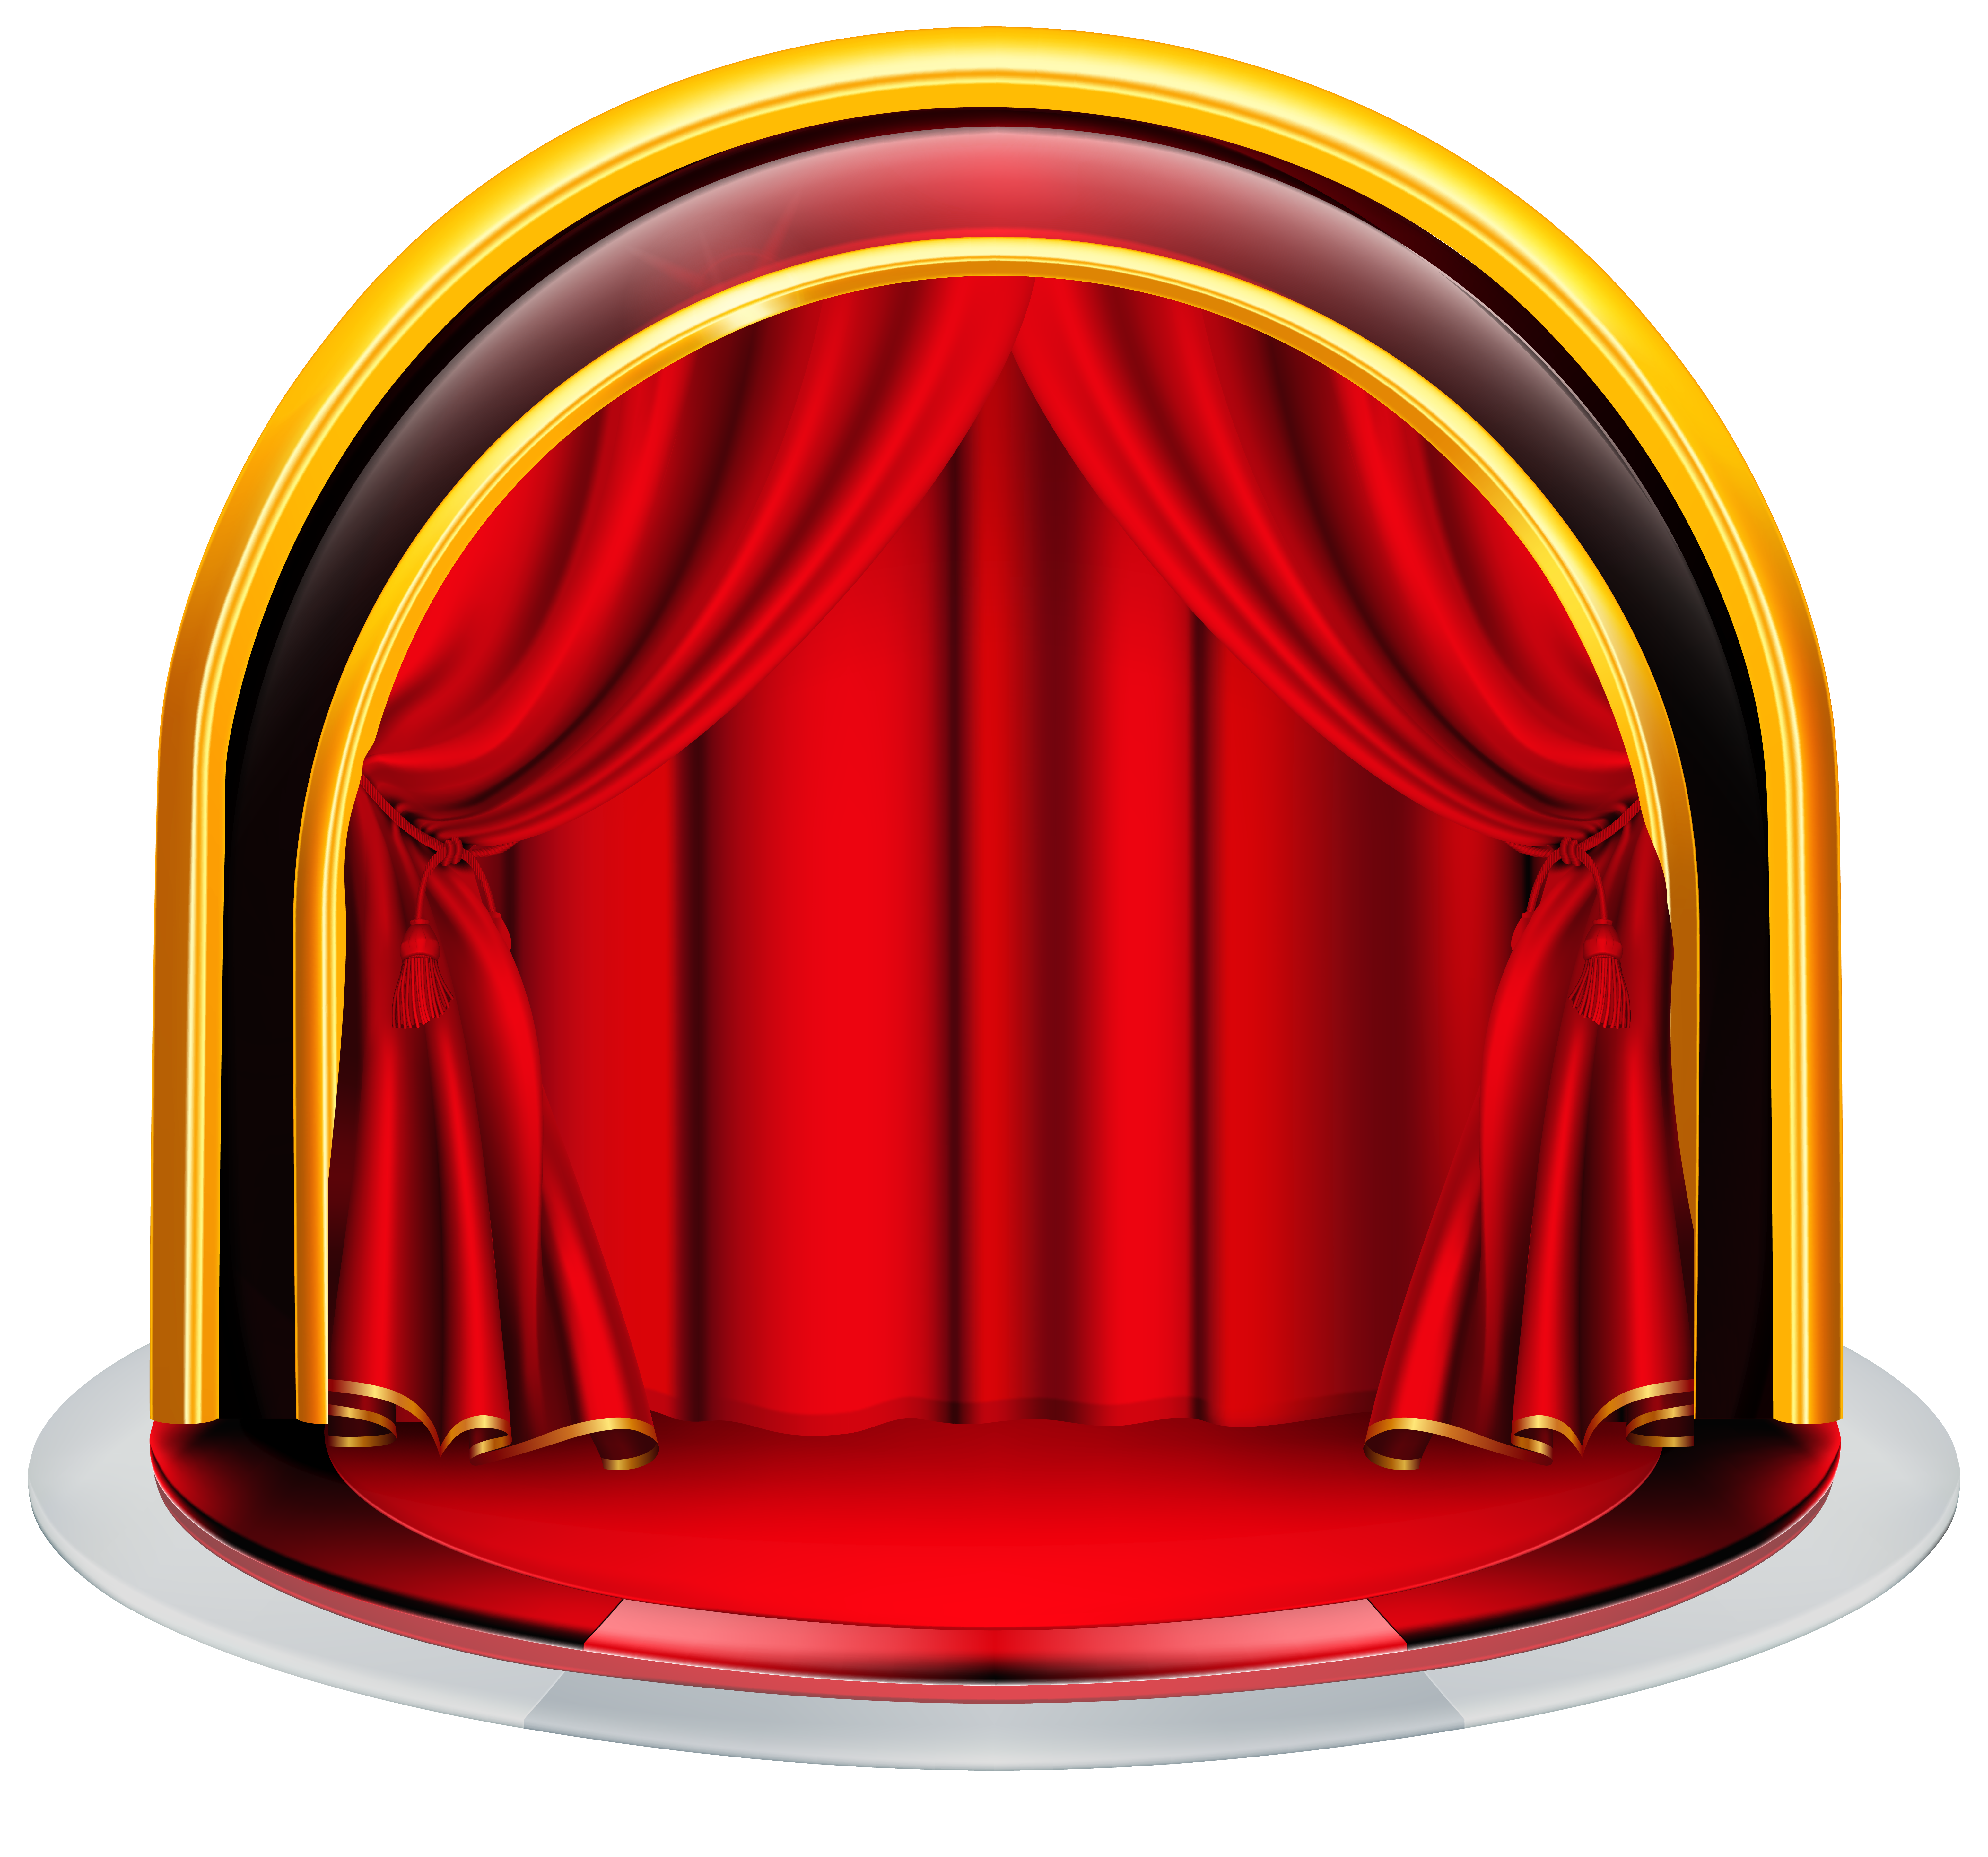 Stage clipart empty stage. With red curtains png